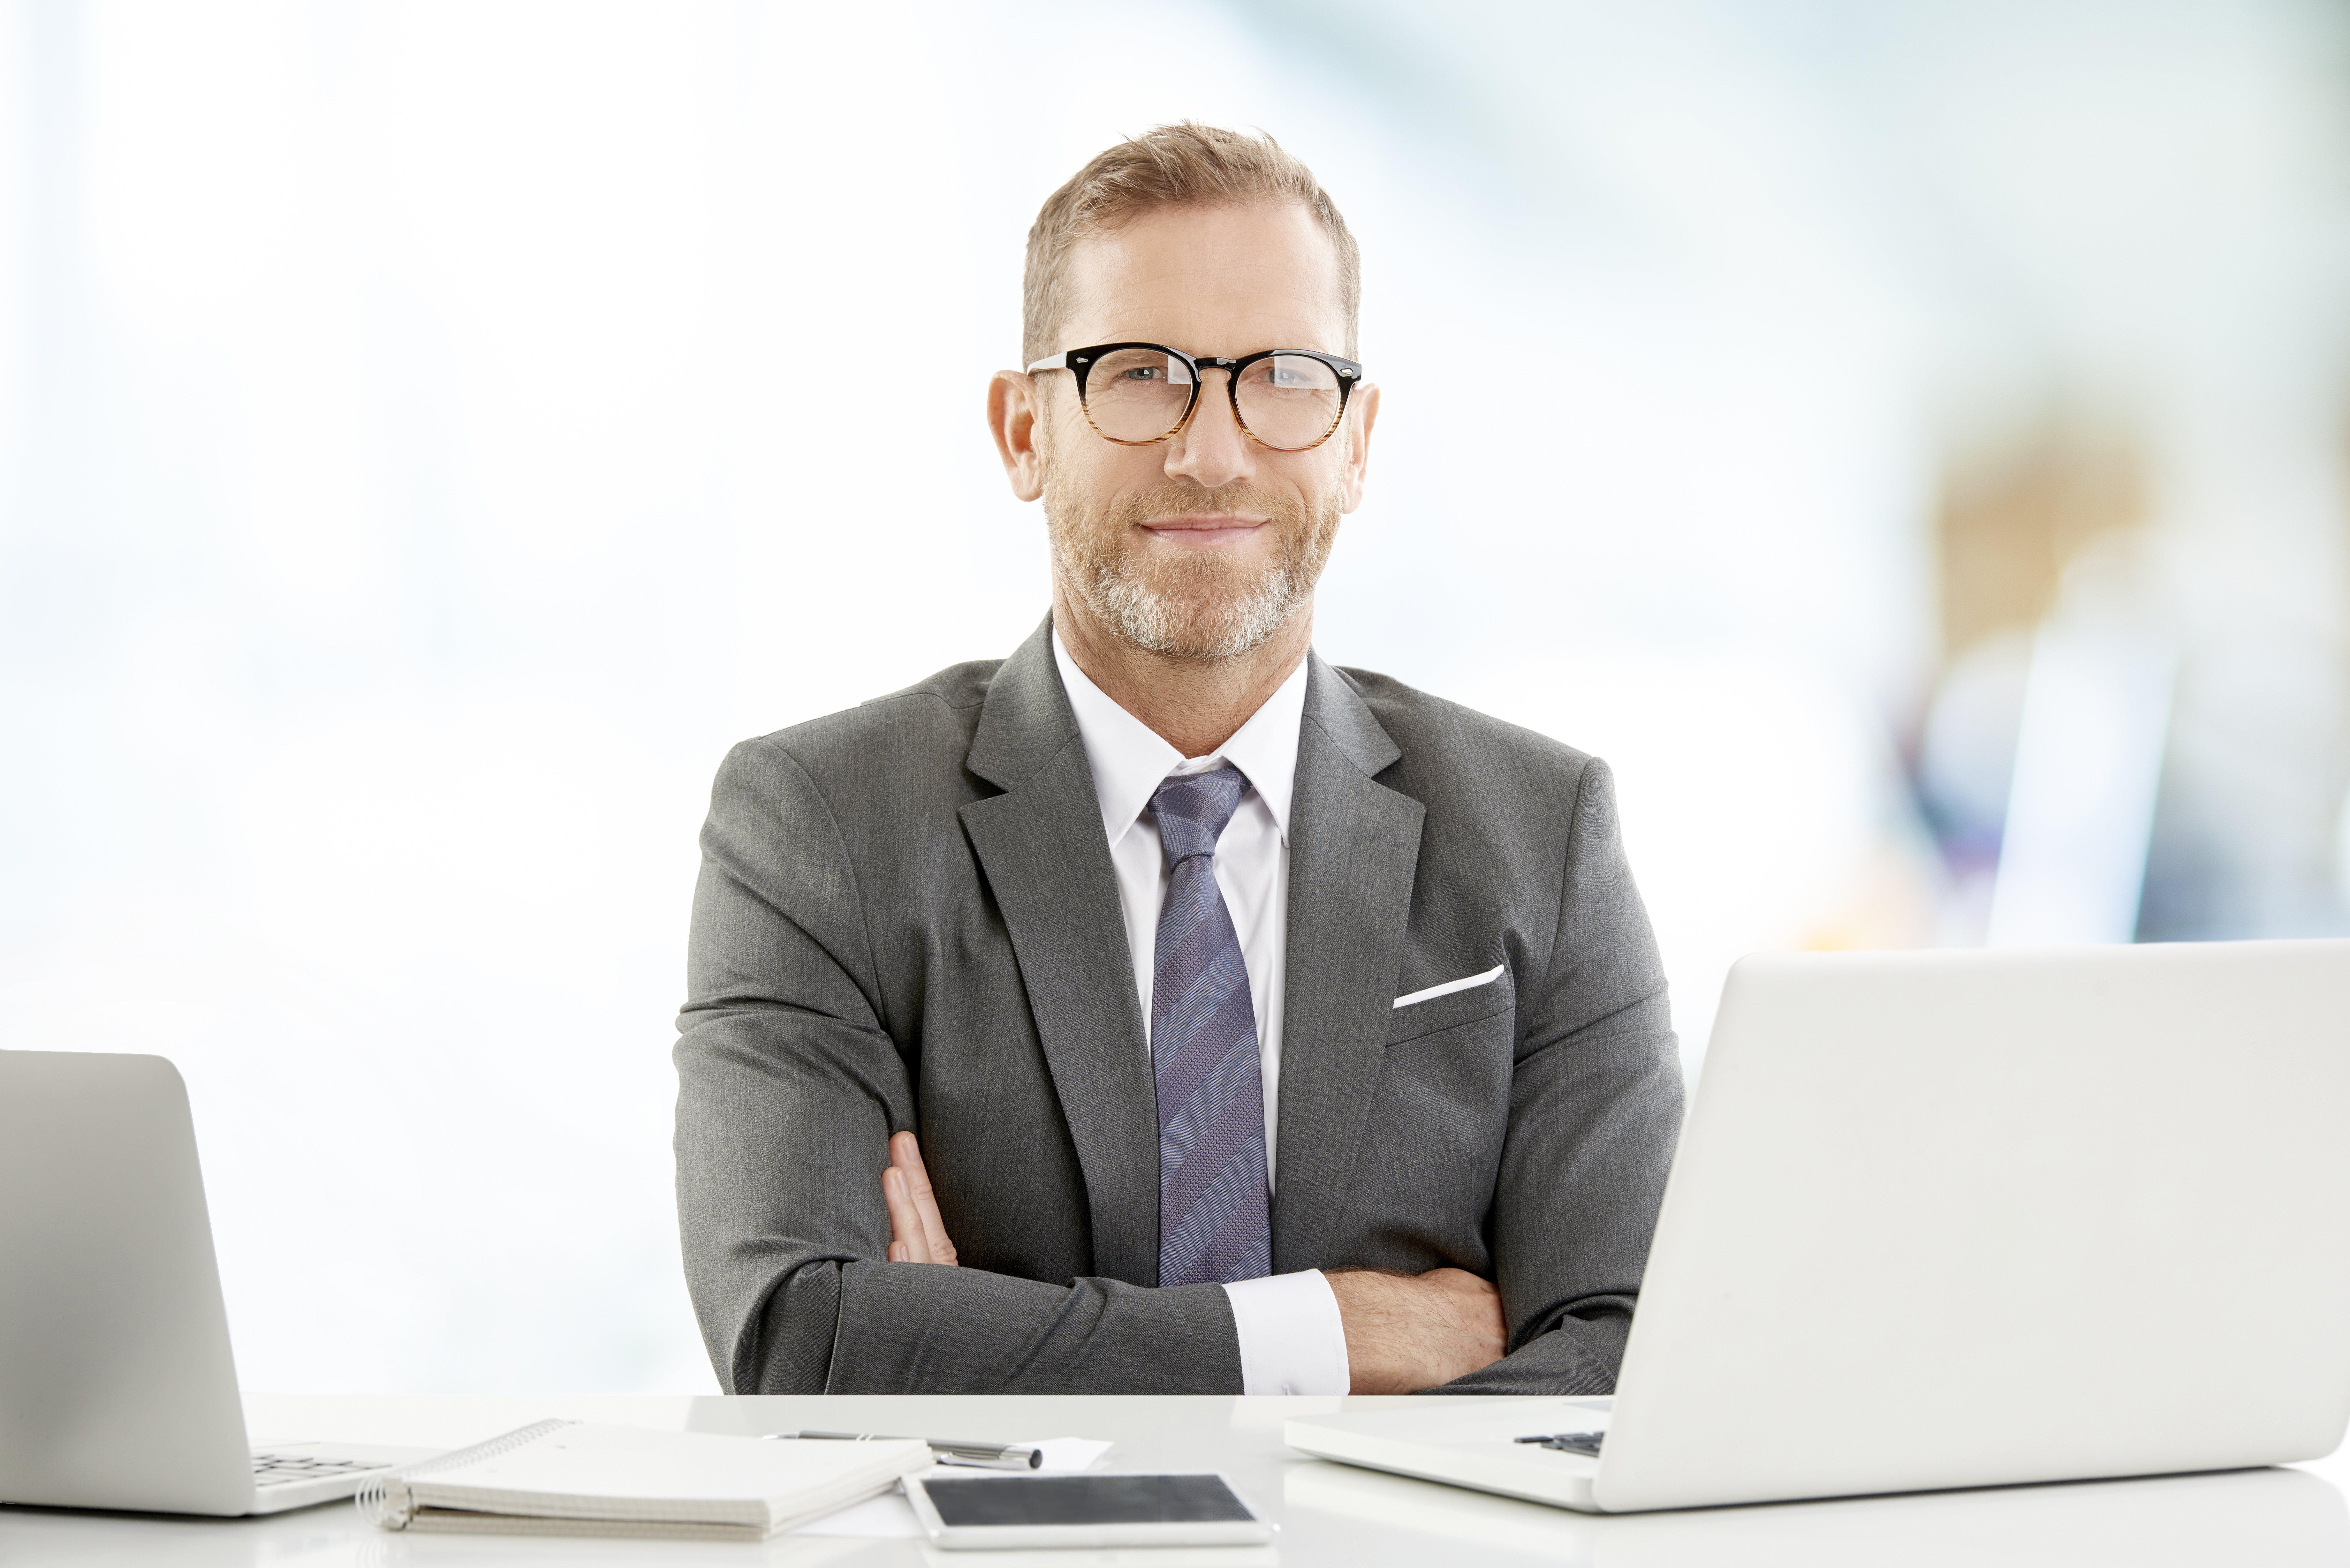 Executive businessman with arms crossed sitting at the office desk and looking at camera.